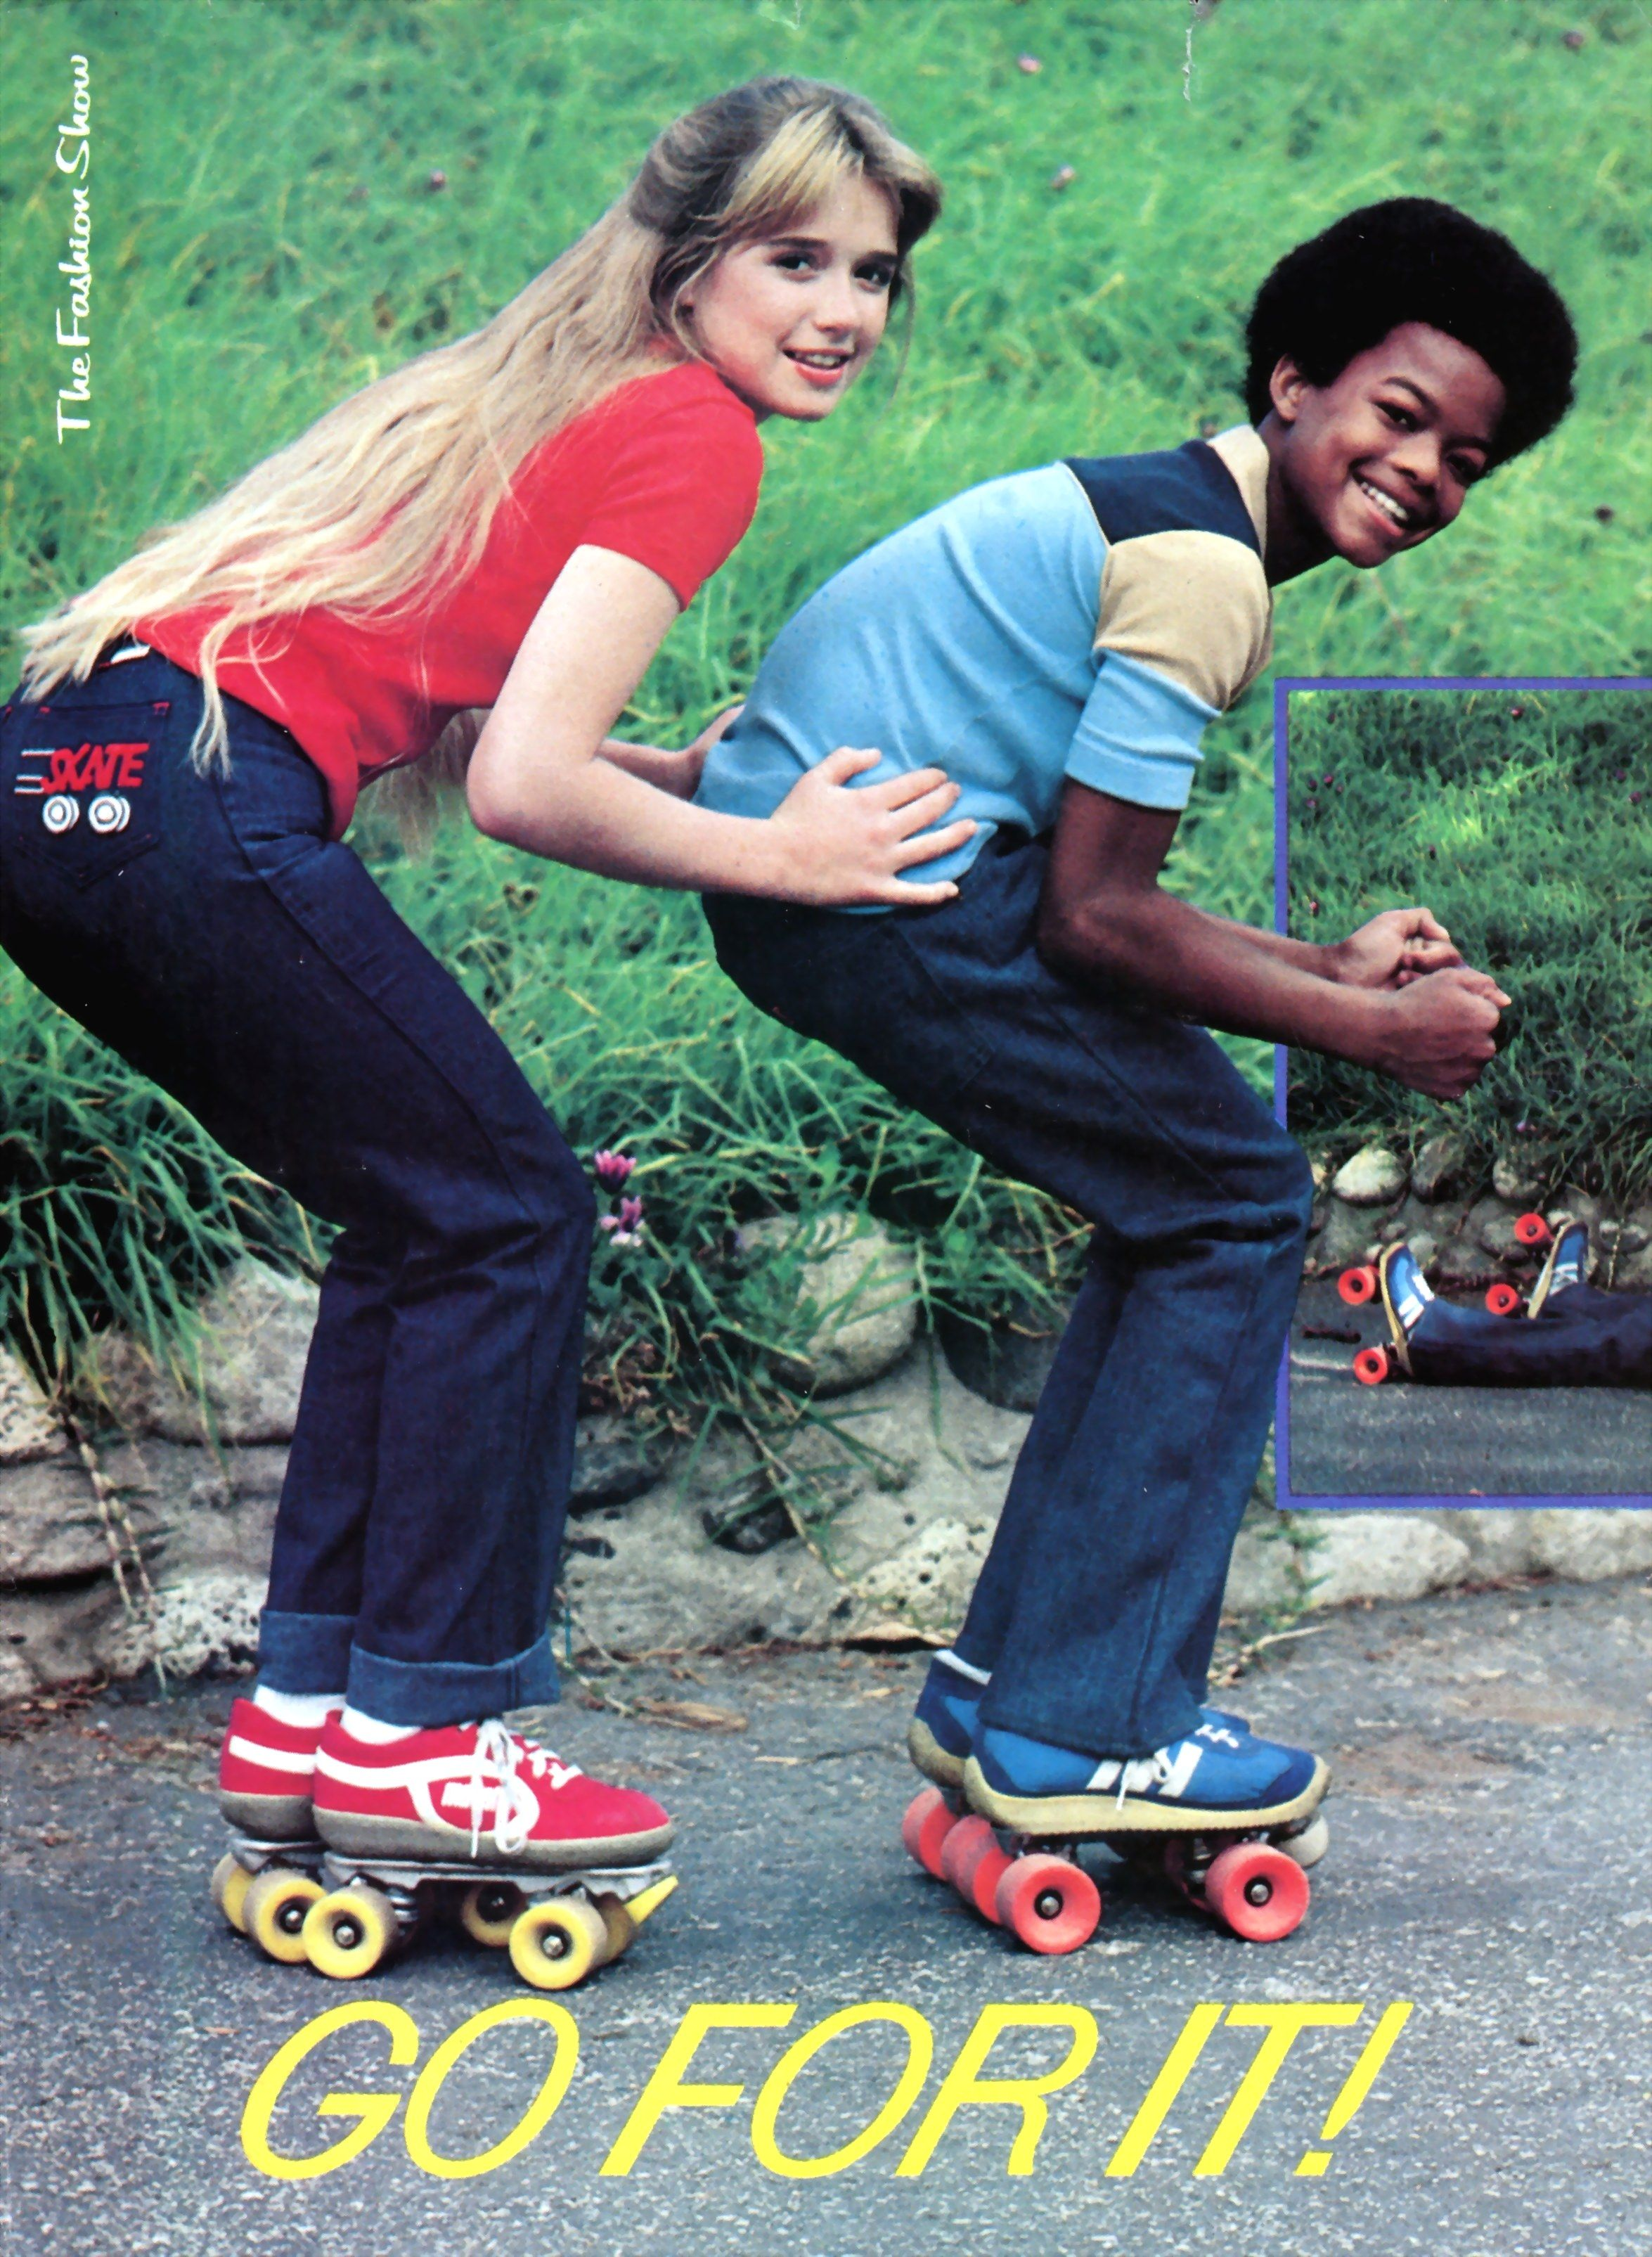 """Roller skates + cast of """"Diff'rent Strokes"""" = I'm goin' for it!"""